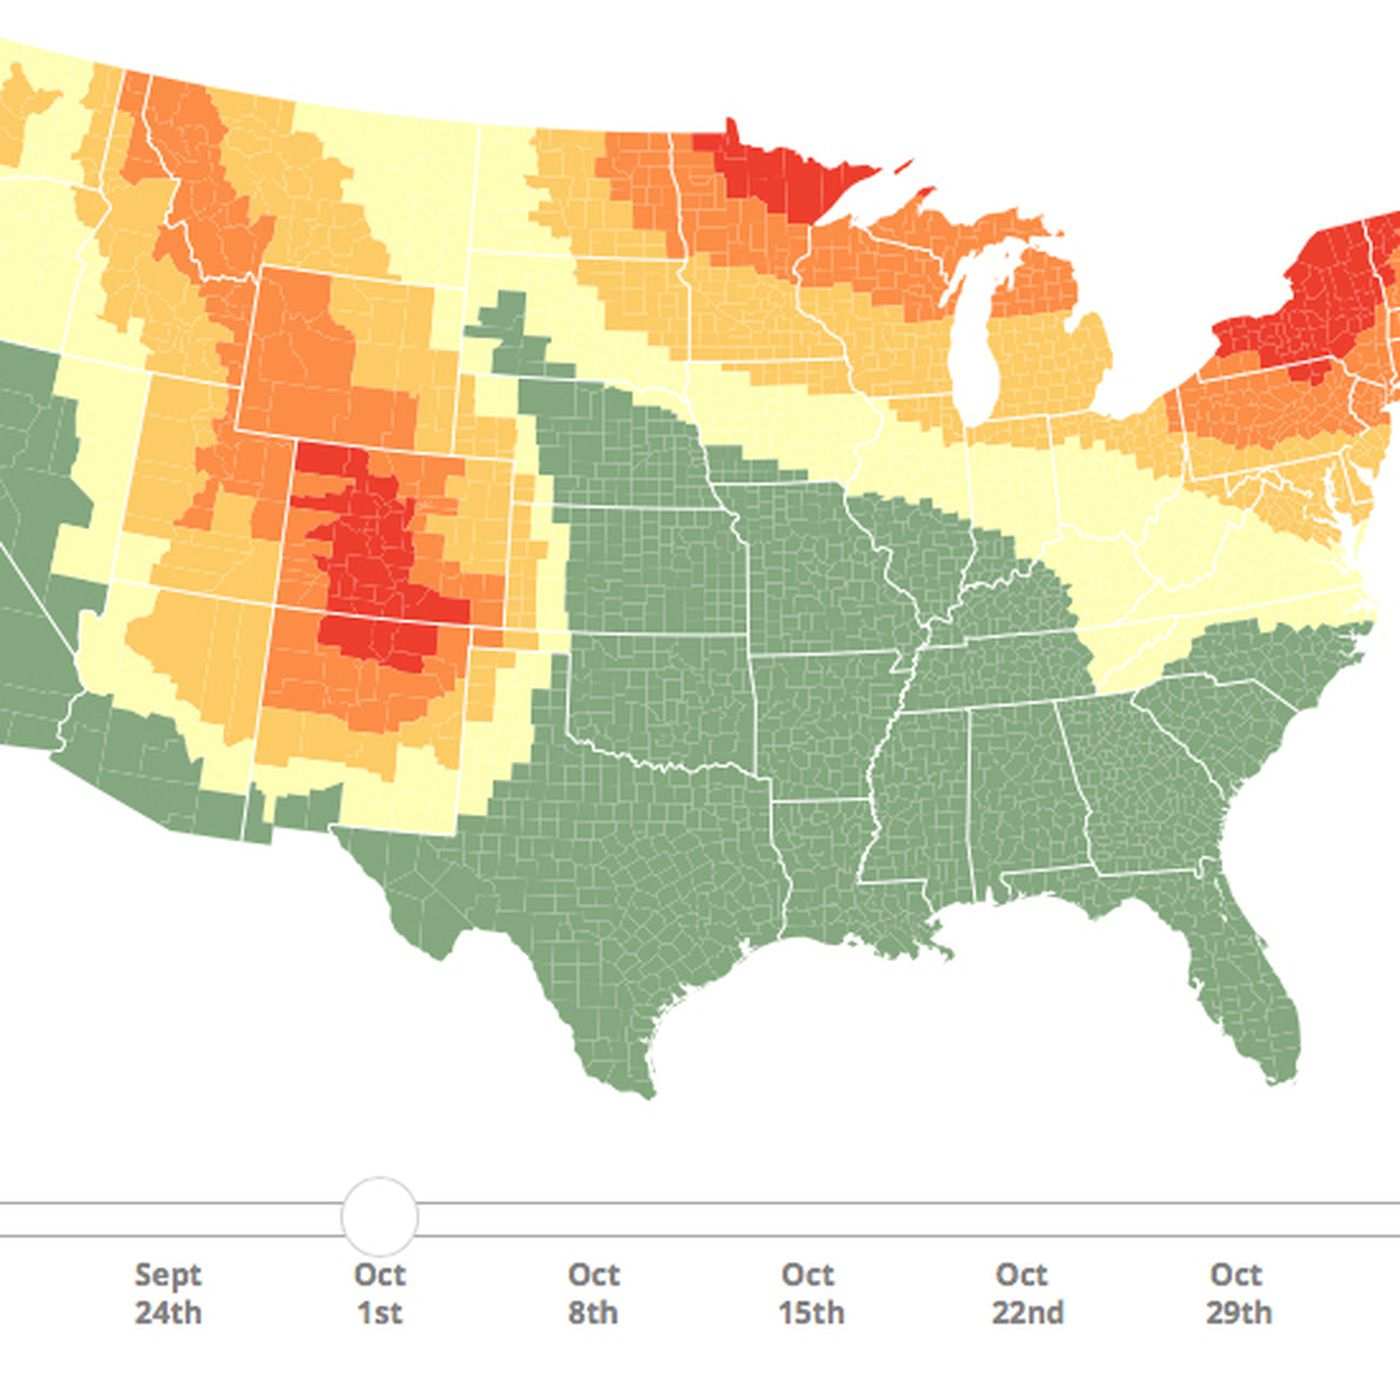 Fall Colors 2018 Map: When And Where Autumn Foliage Will Peak - Vox - California Fall Color Map